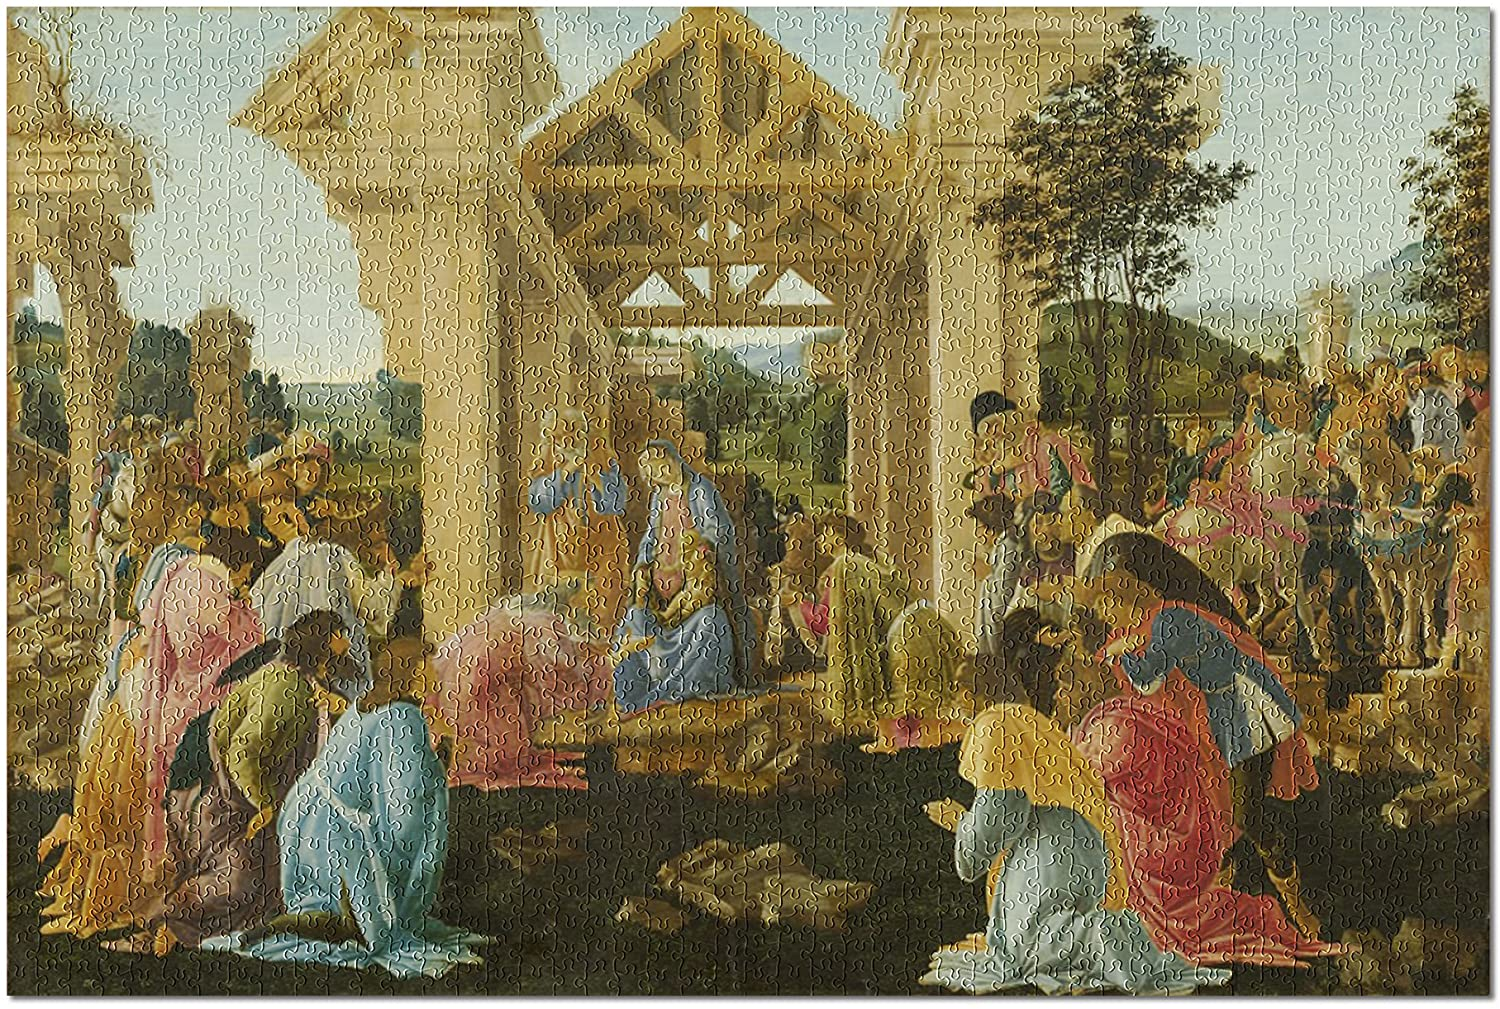 The Adoration of the Magi - Masterpiece Classic - Artist: Sandro Botticelli c. 1478 57923 (19x27 Premium 1000 Piece Jigsaw Puzzle for Adults)